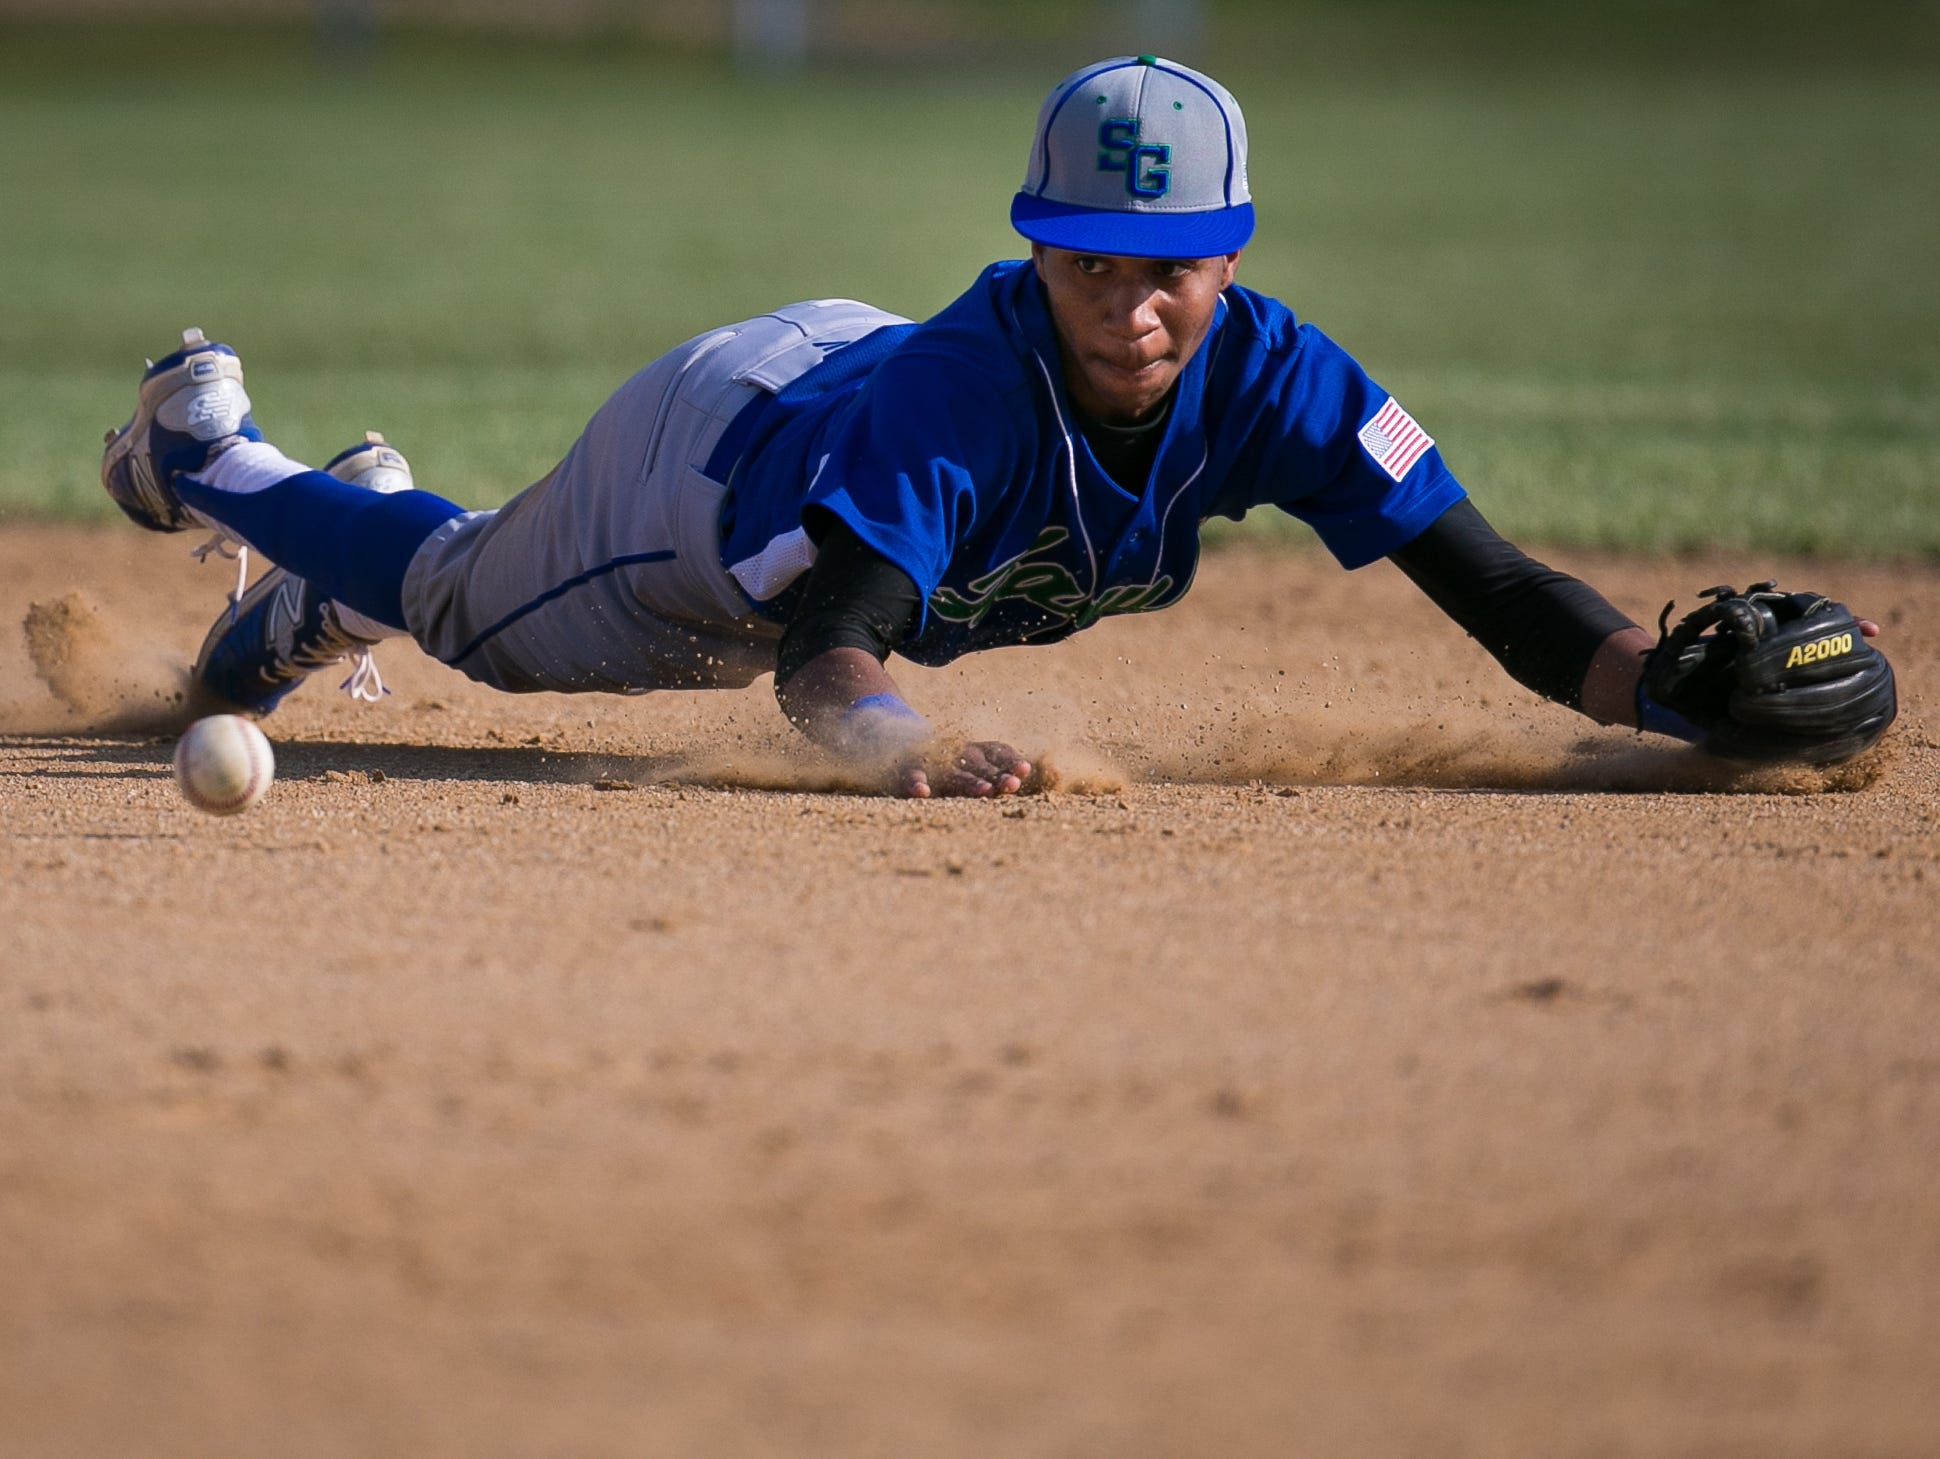 St. Georges second baseman Robert Shorts dives for the ground ball.